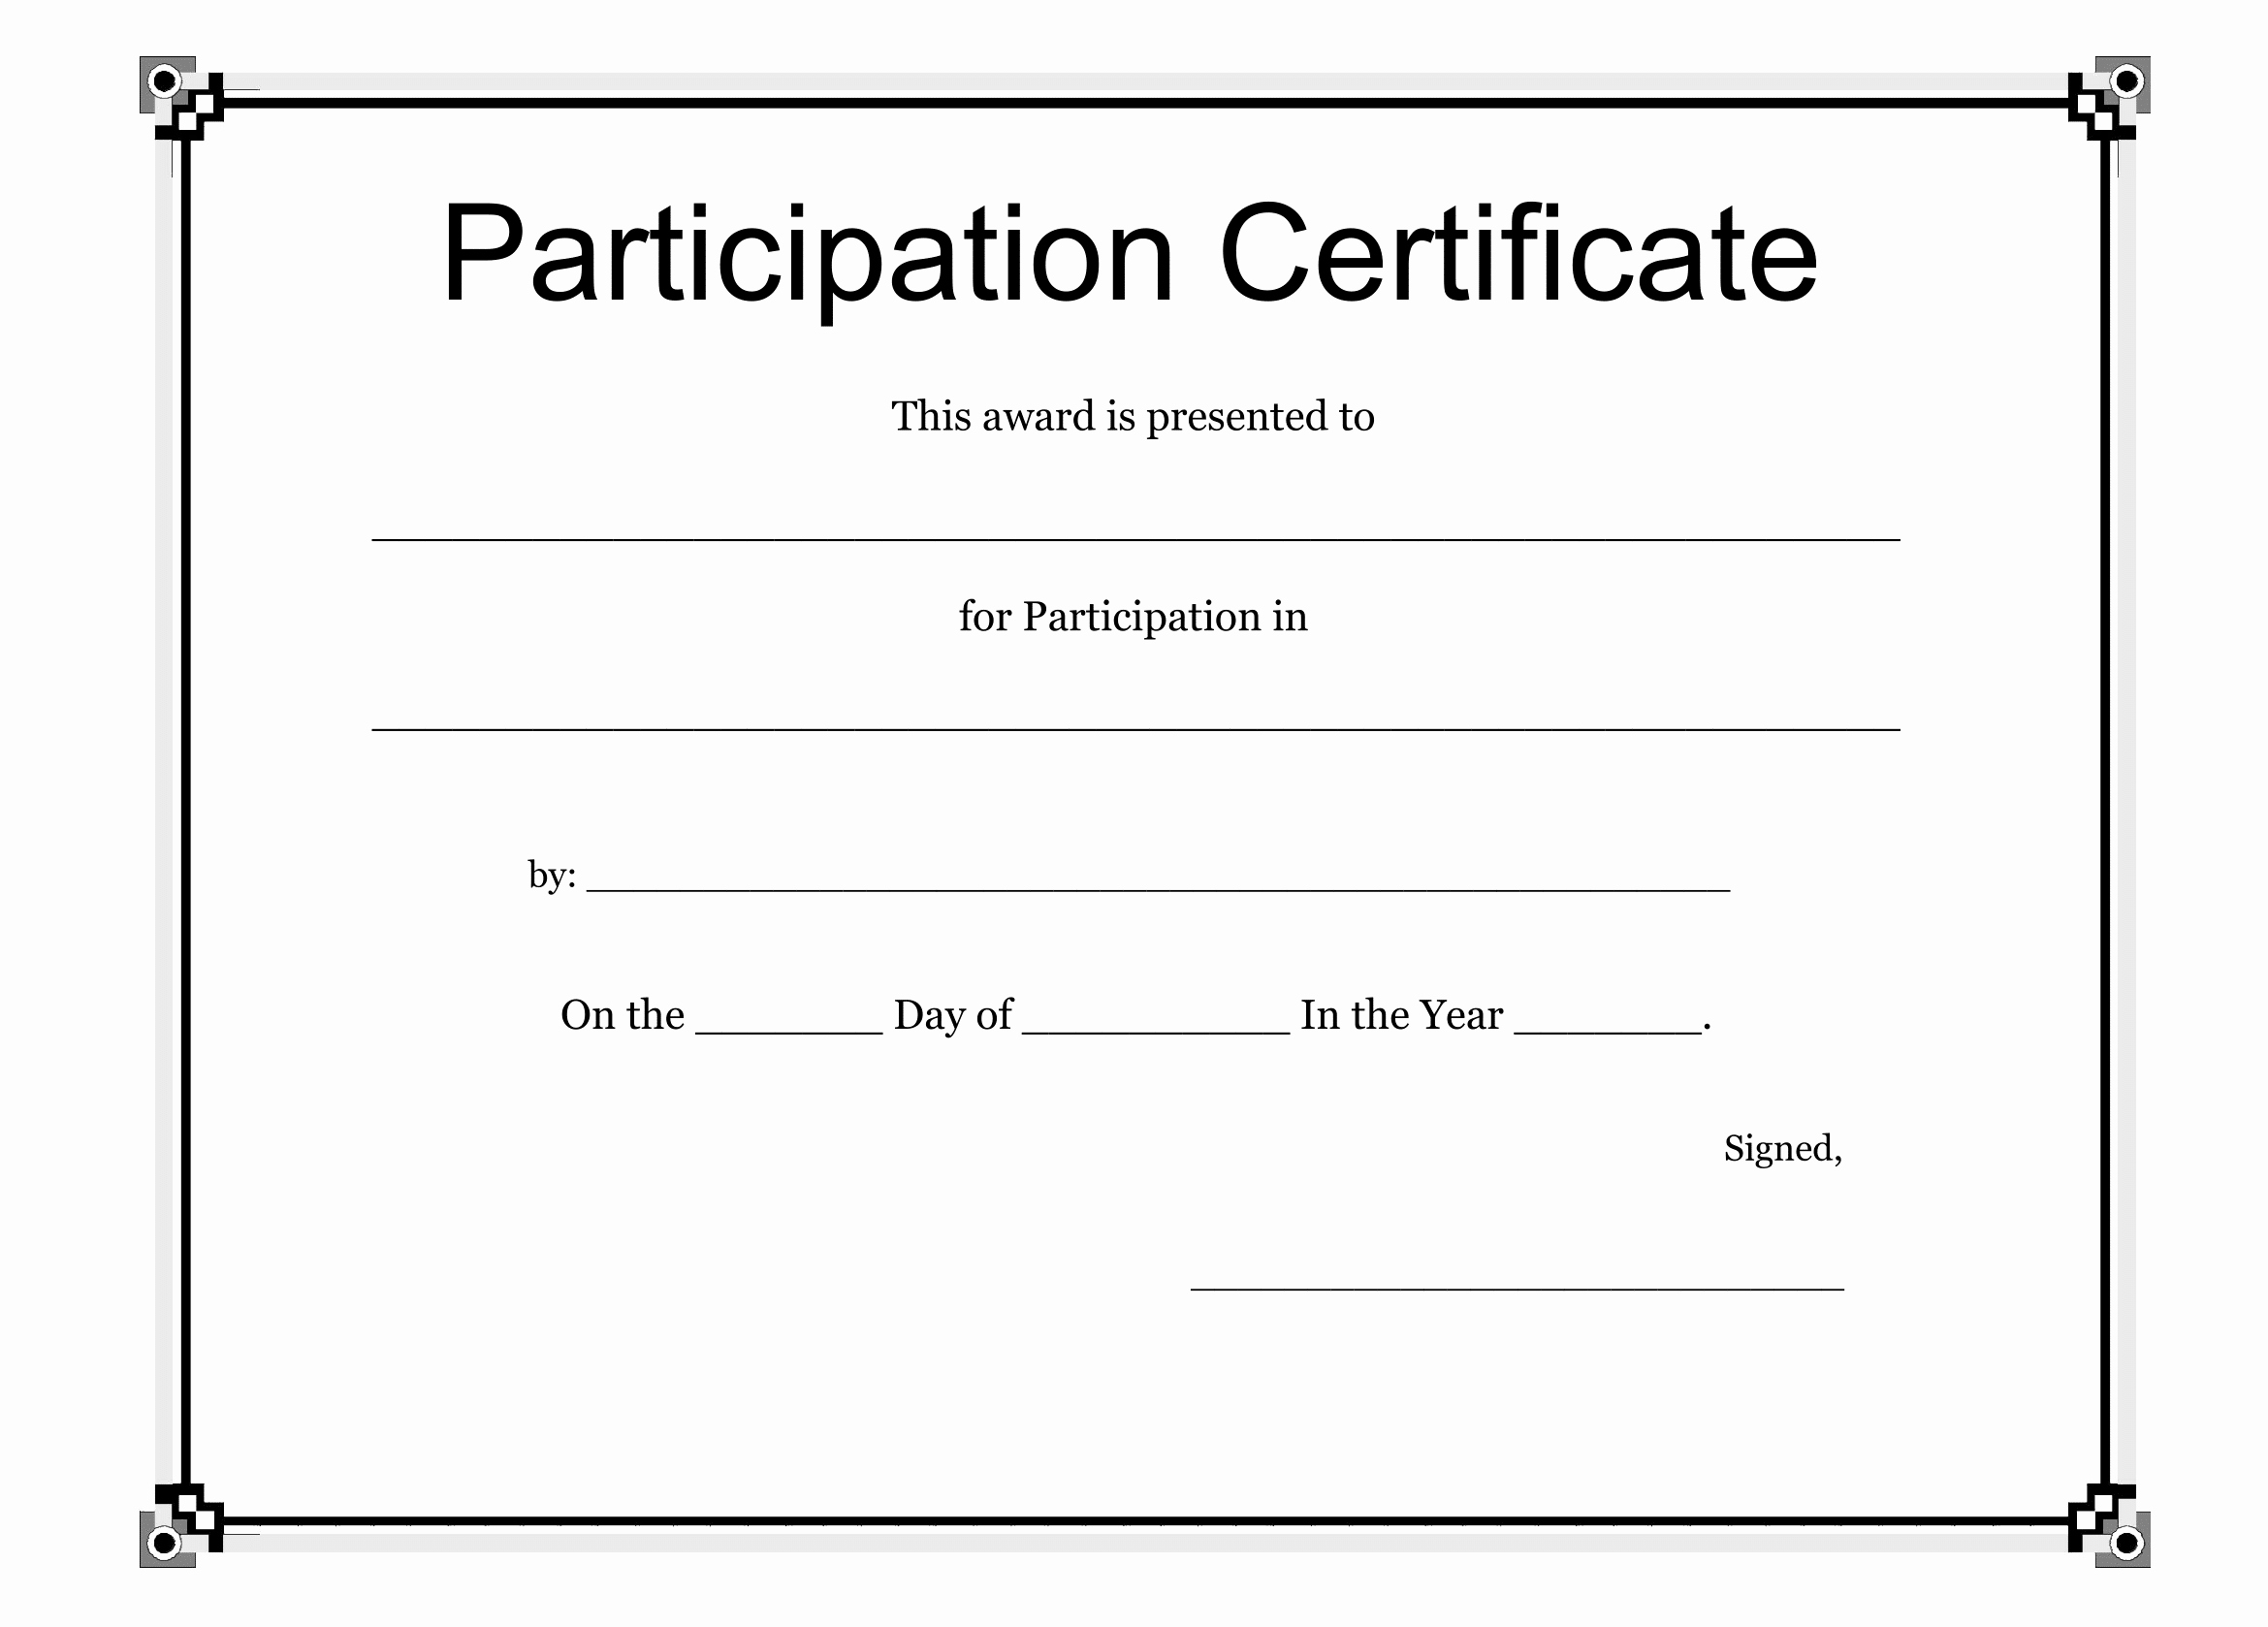 Participation Certificate Template Free Download